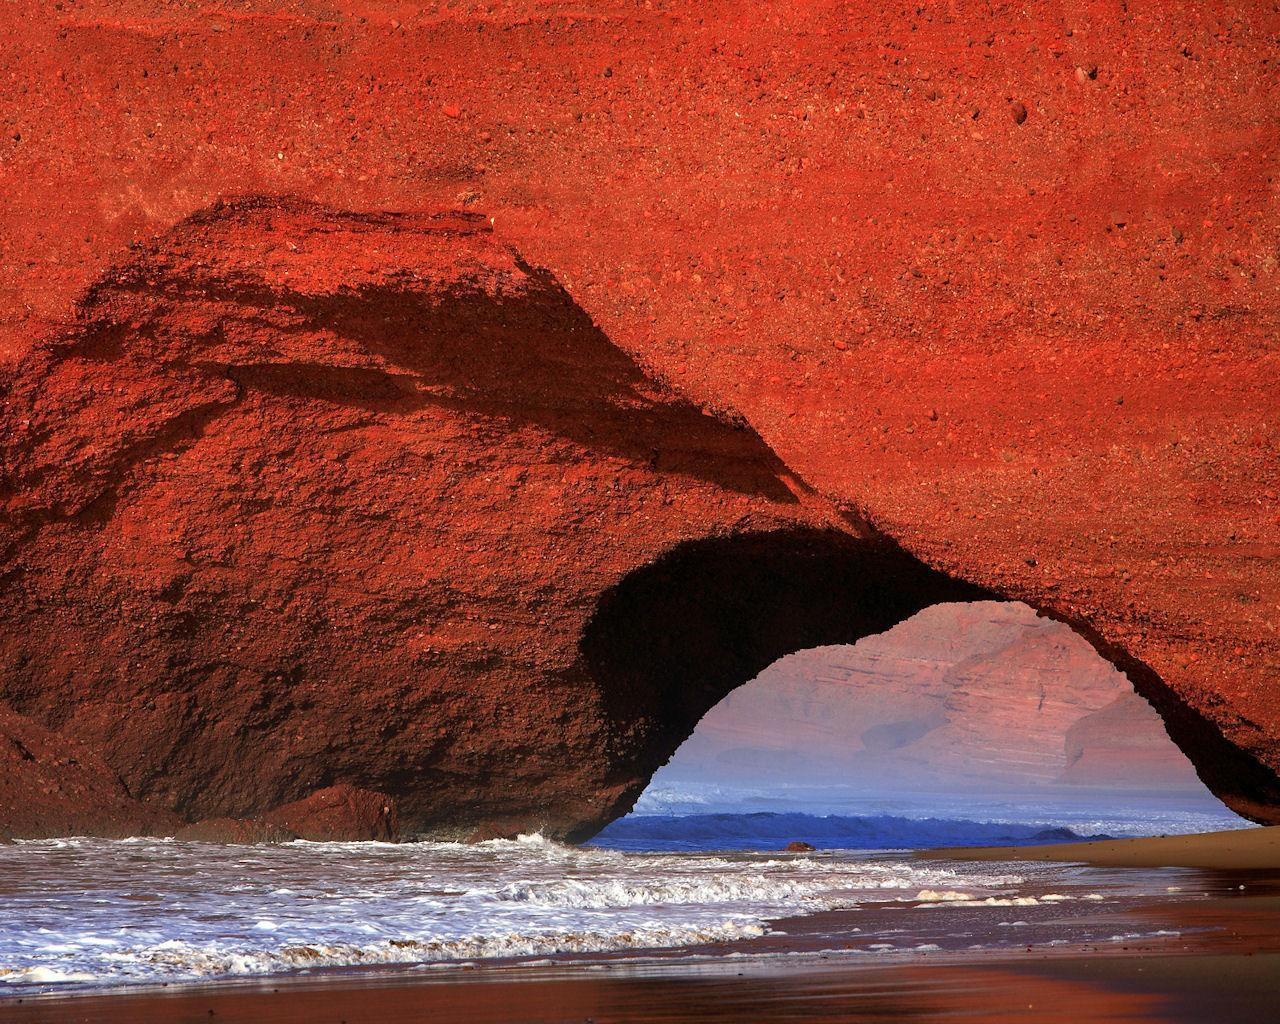 Red Cliffs of El Gezira Morocco Wallpaper__yvt2